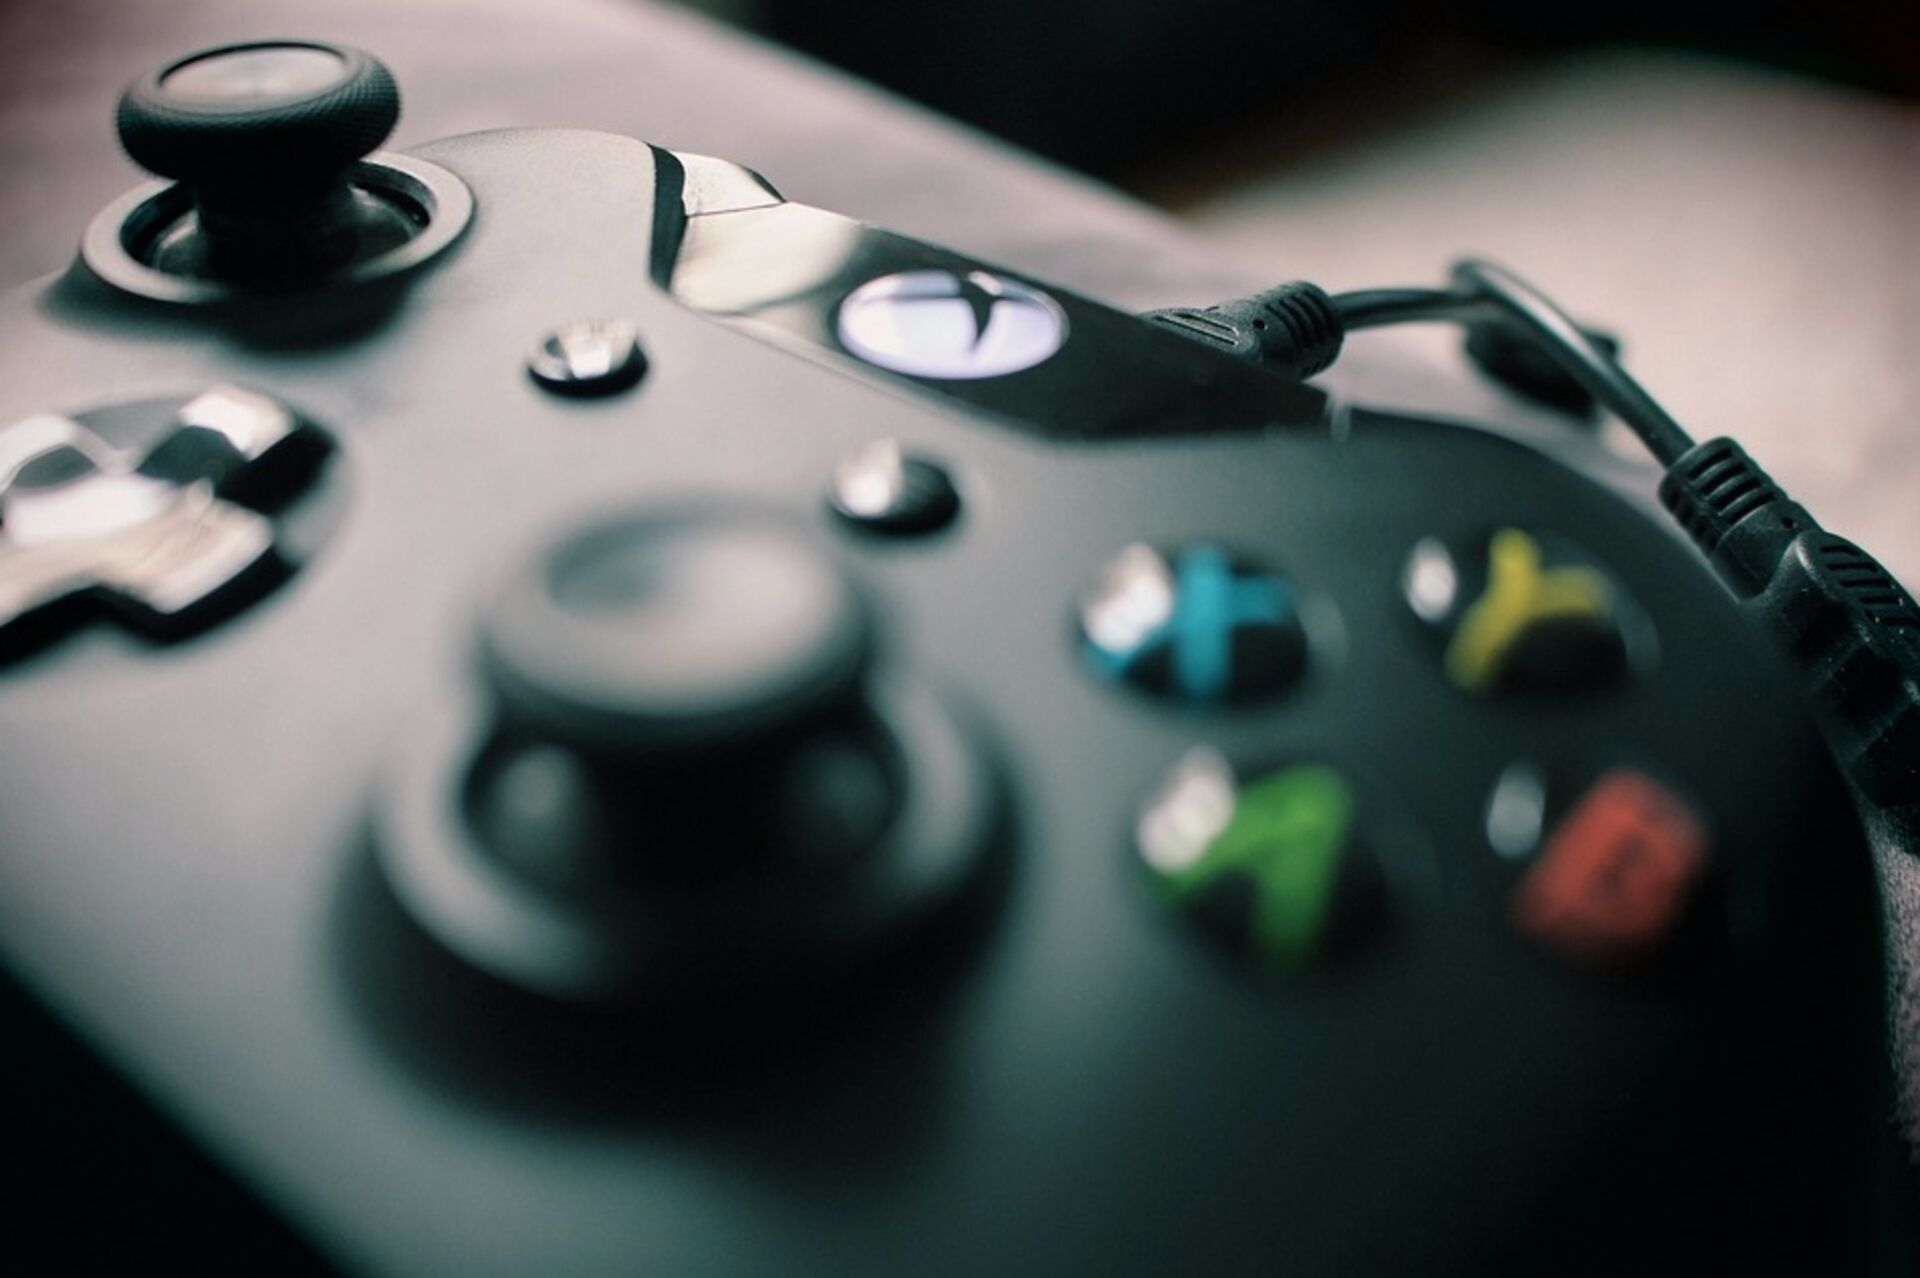 Xbox Live Indie Games officially closes 29th September